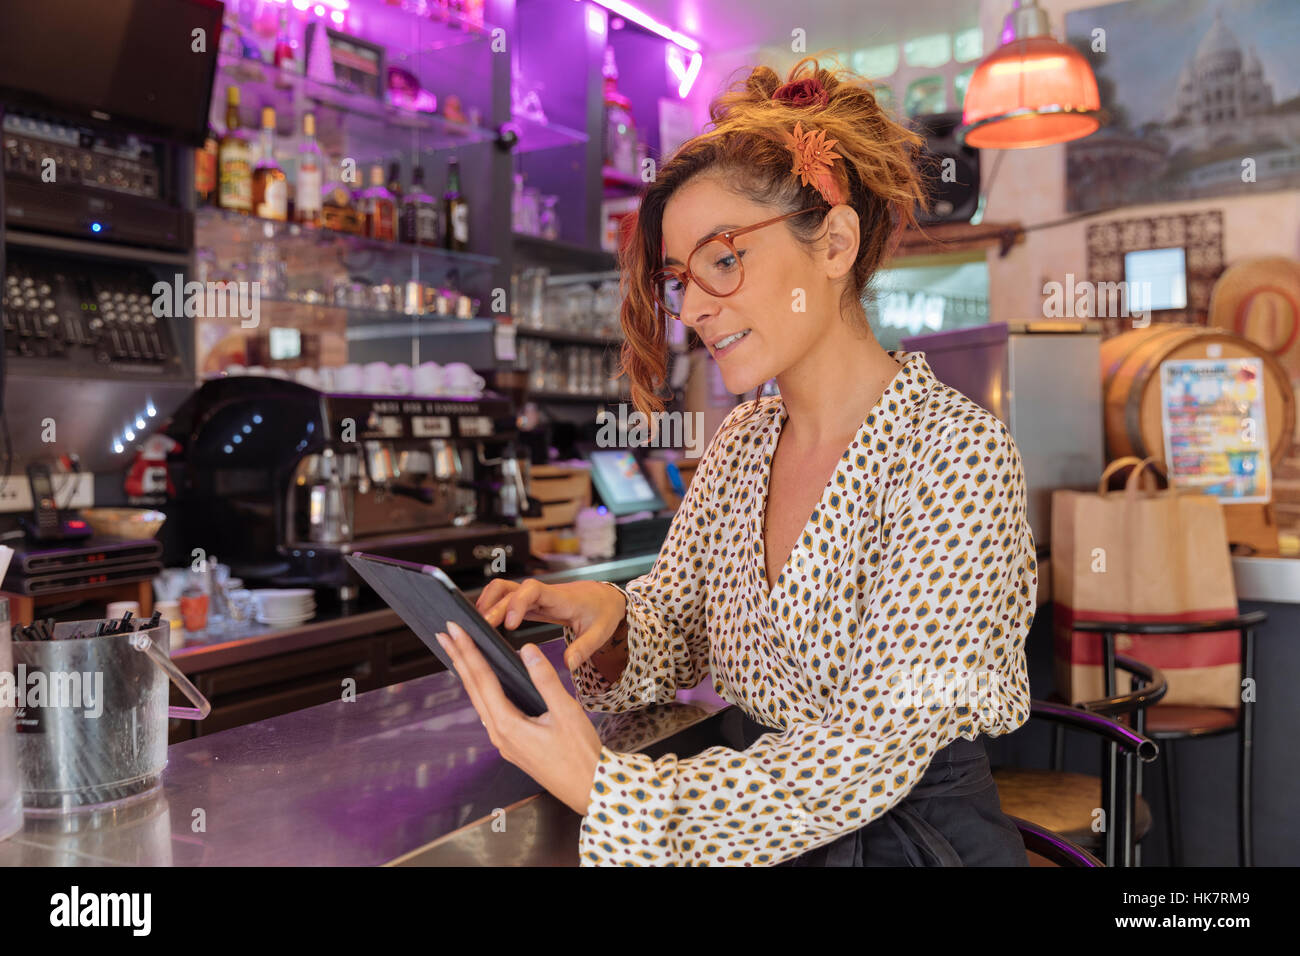 Entrepreneur and owner of a cafe in Paris - Stock Image